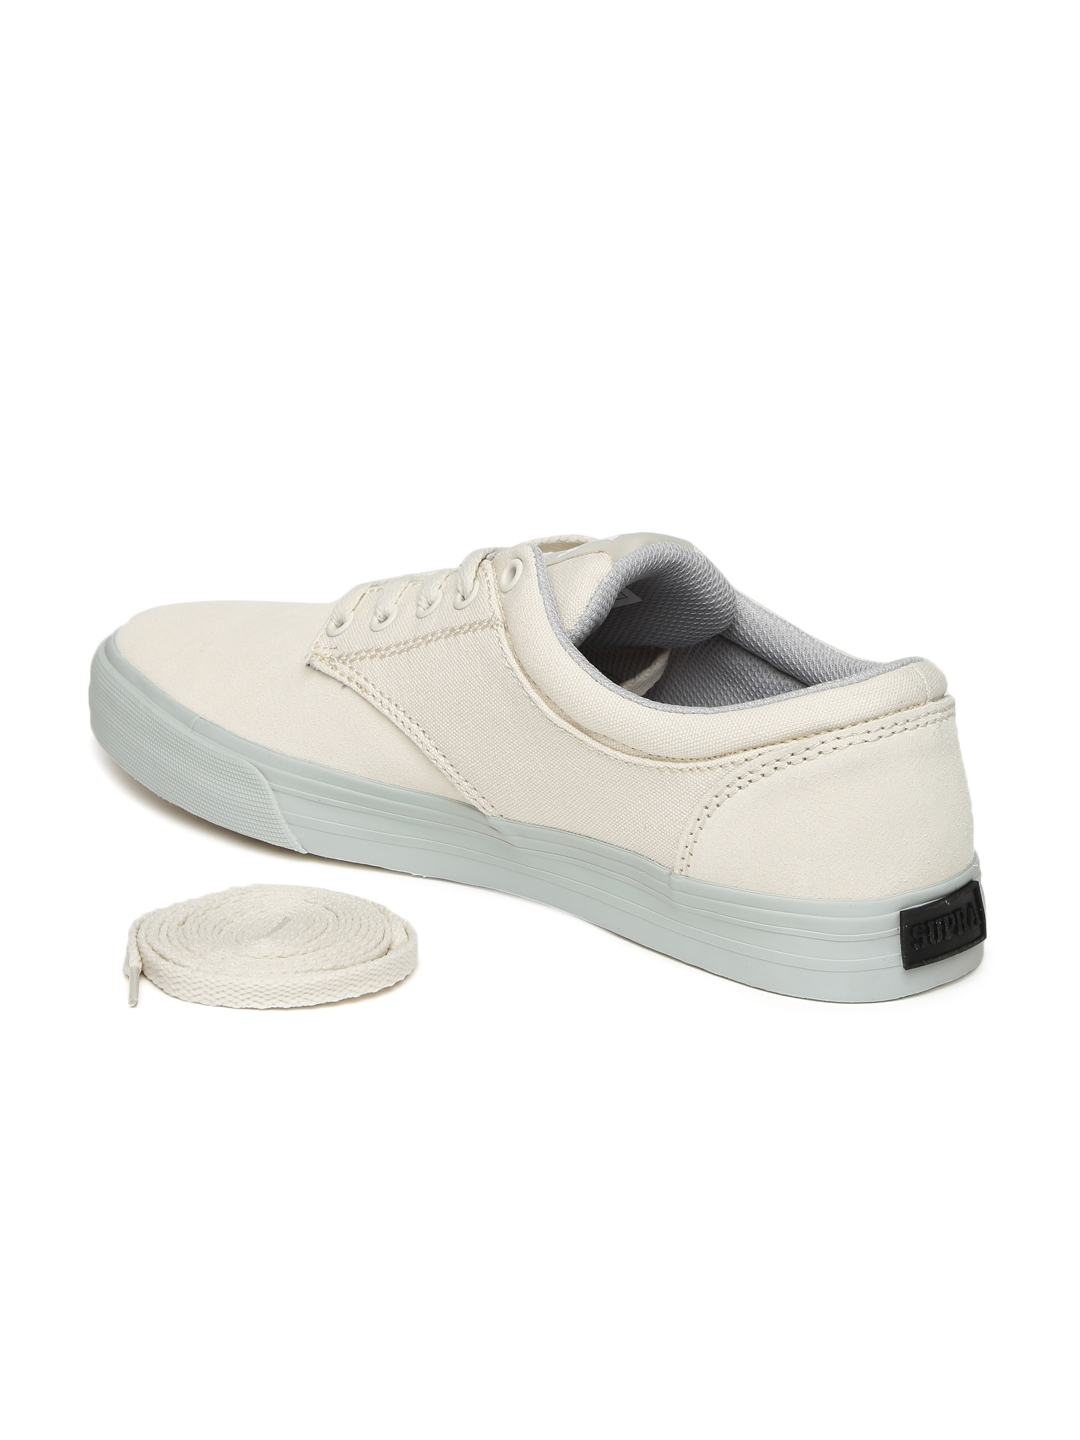 3ebd71a09e Buy Supra Men Off White CHINO Sneakers - Casual Shoes for Men ...